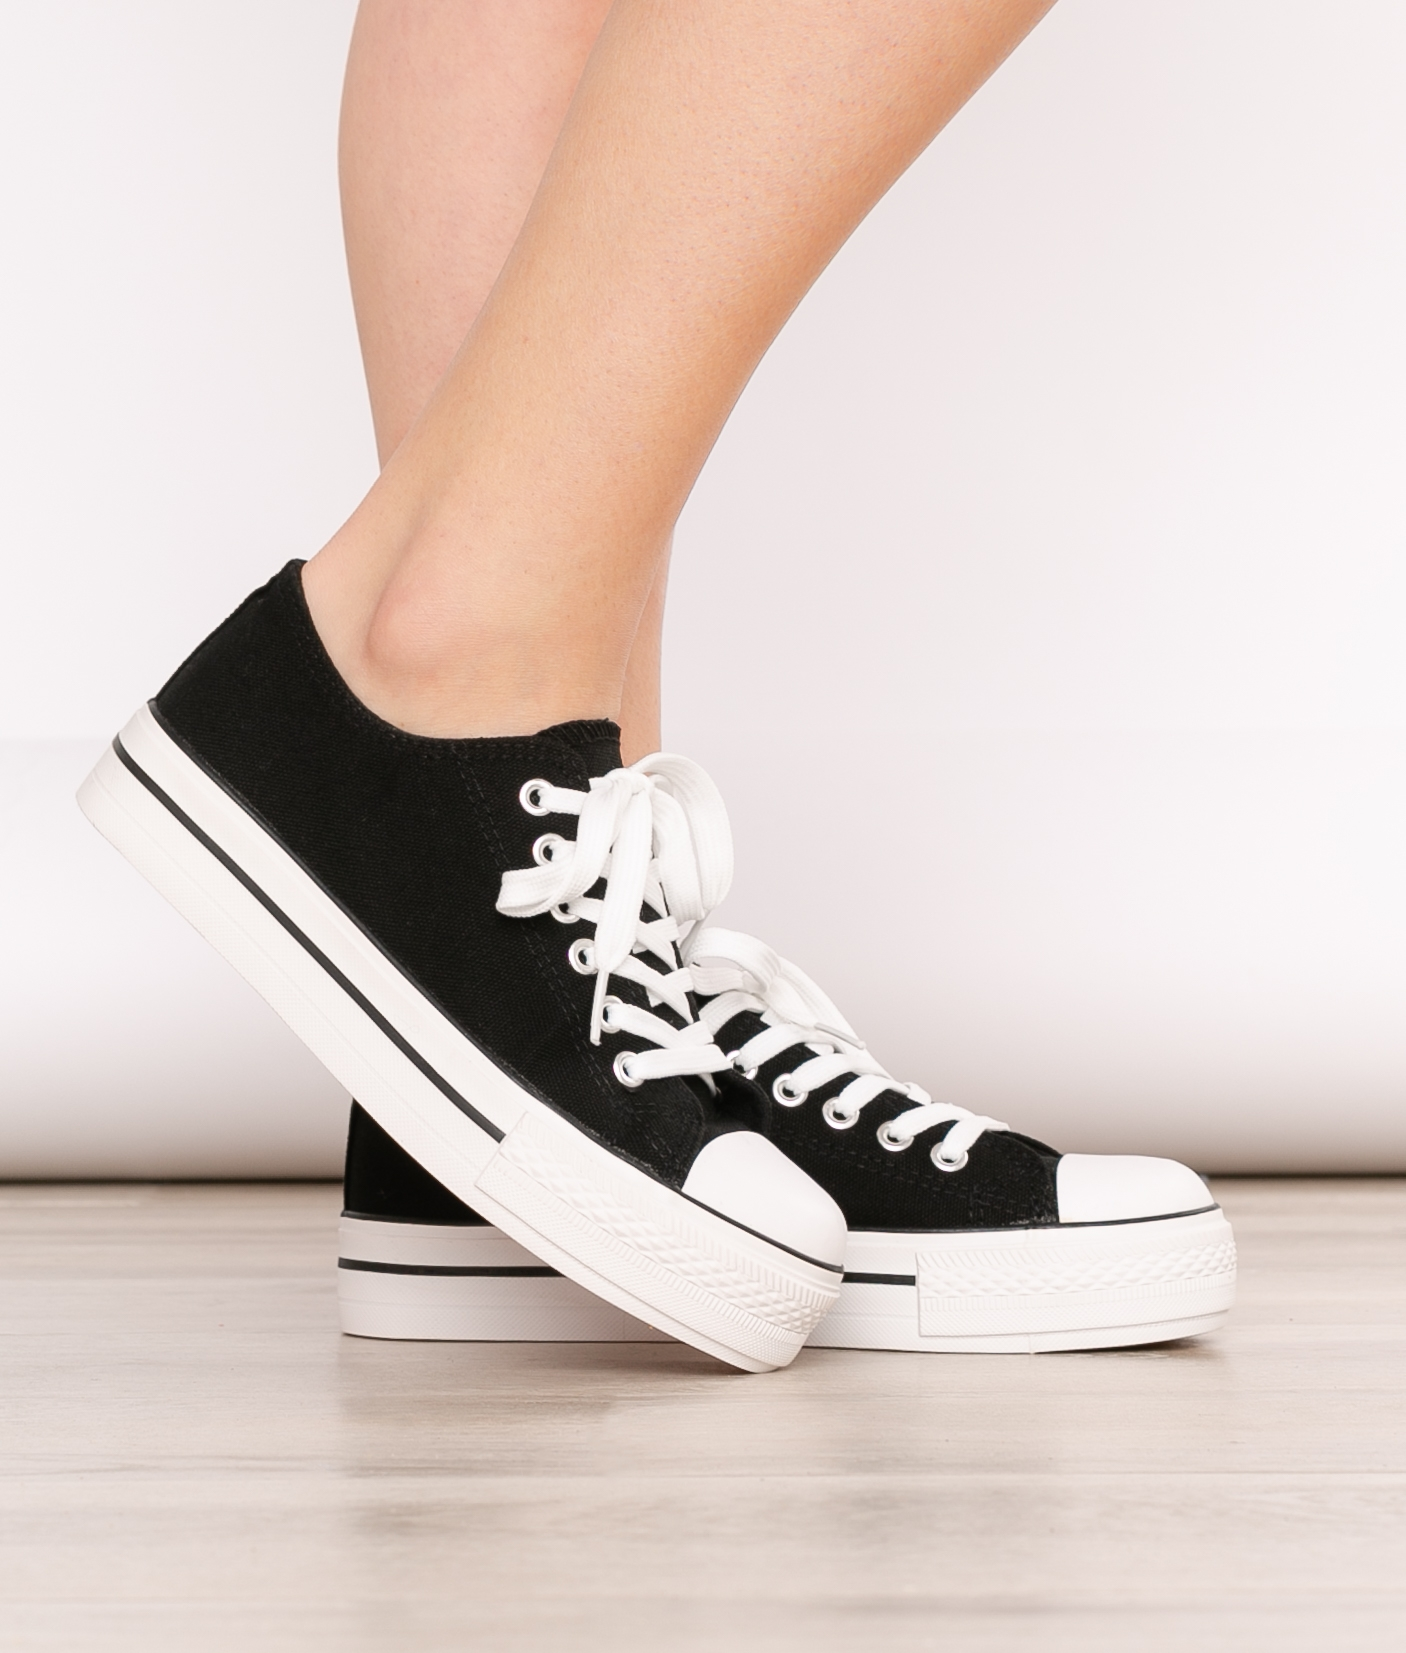 Sneakers Mia - Black